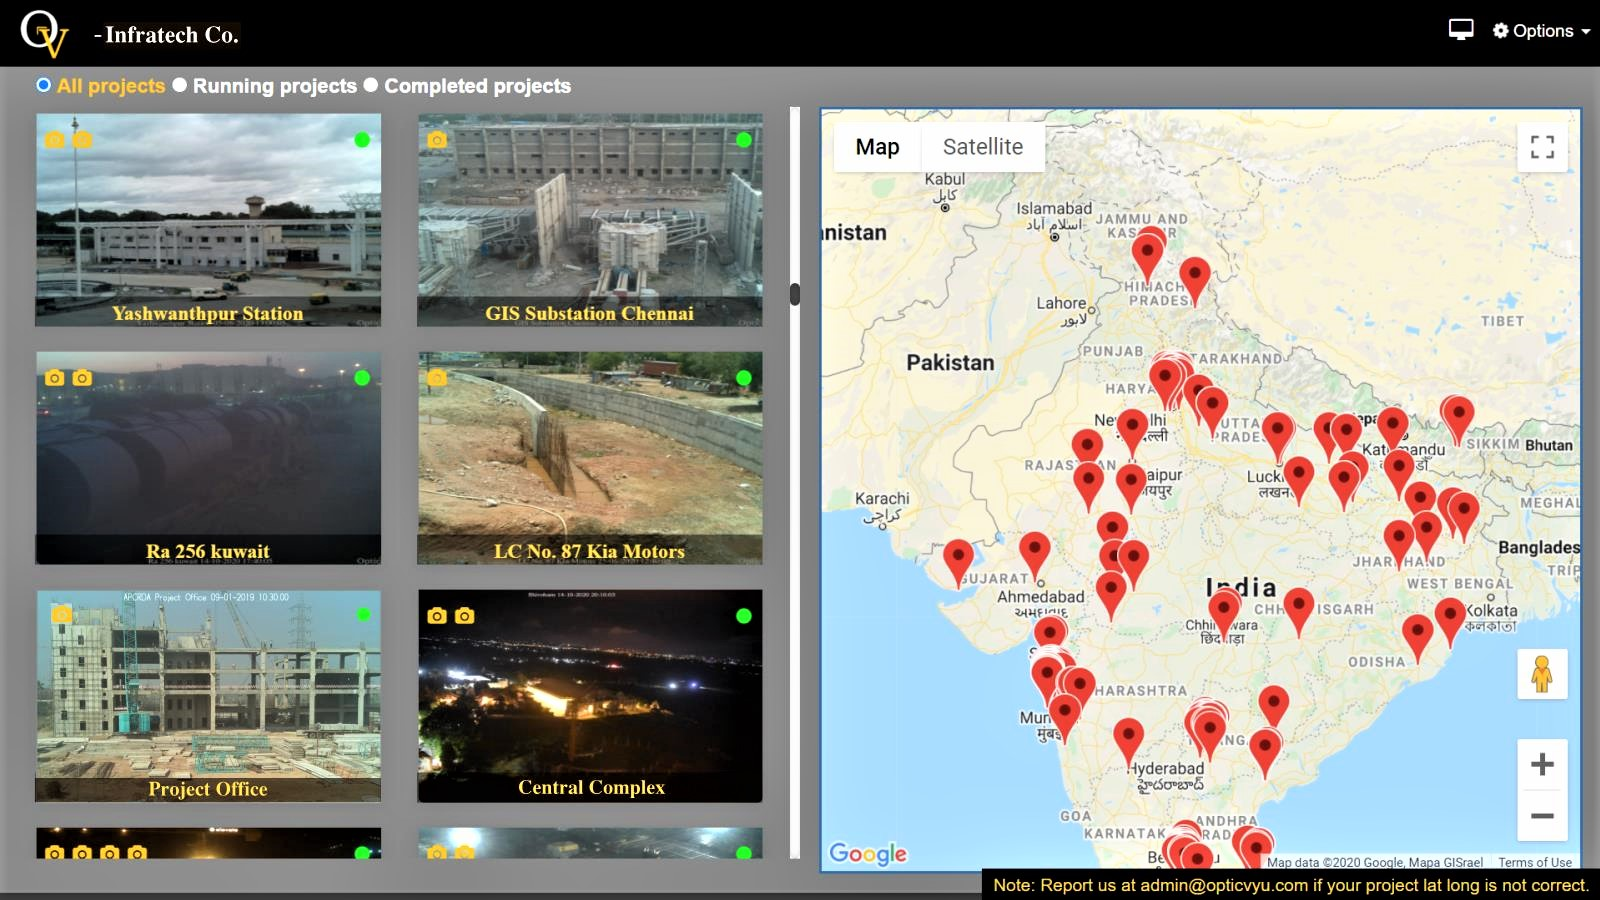 Interactive map view